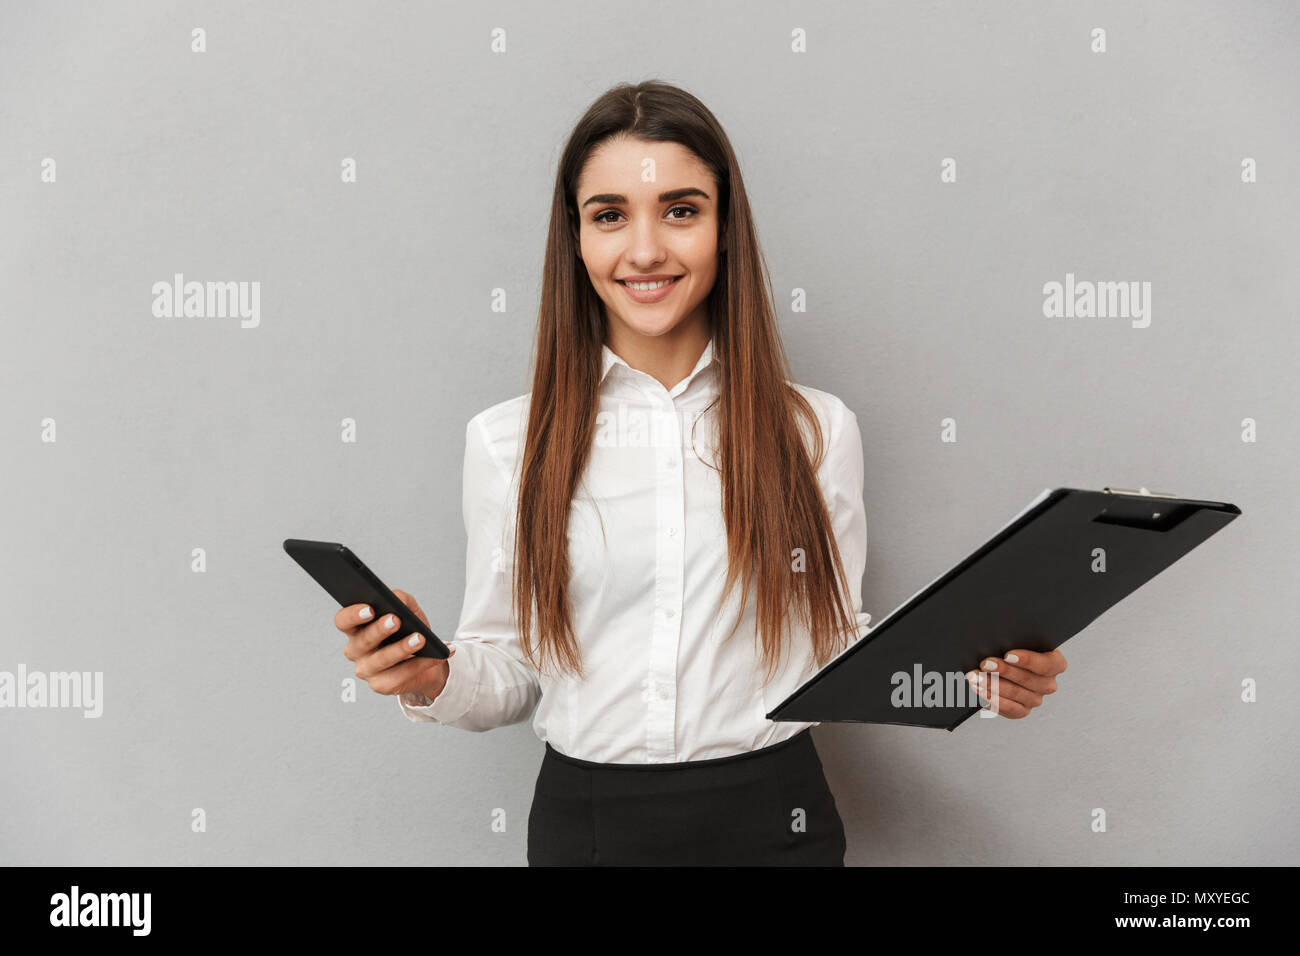 Photo of office woman 20s in white shirt and black skirt looking on camera with smile while holding documents and smartphone in both hands isolated ov - Stock Image